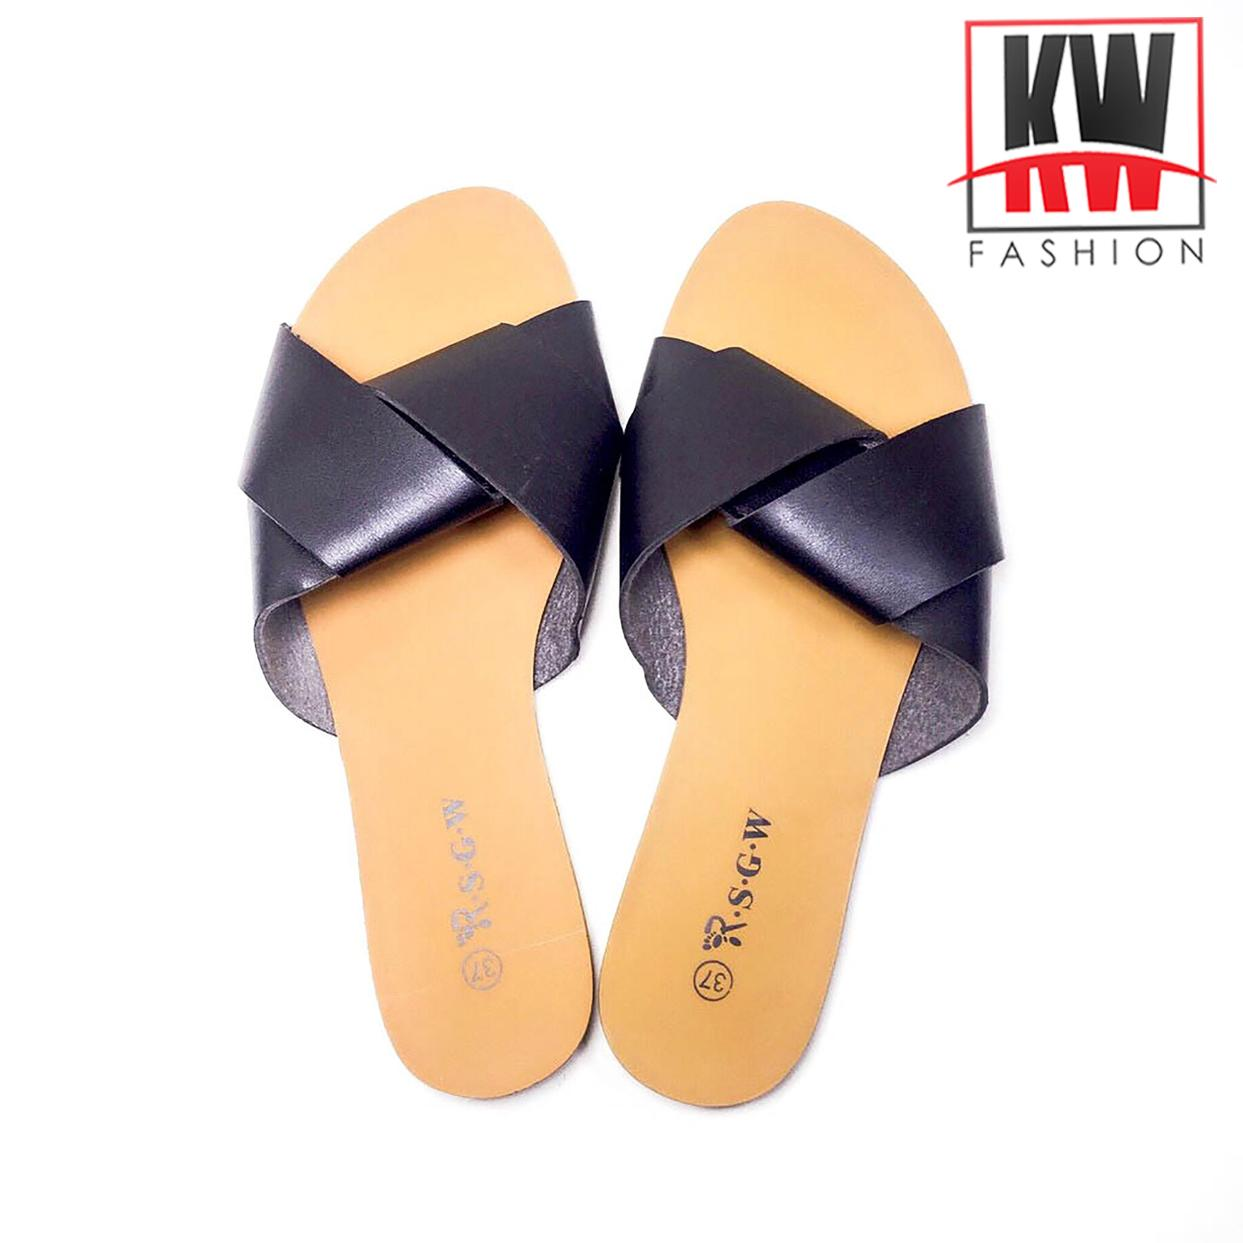 554a716ae2dfba Shoes for Women for sale - Womens Fashion Shoes Online Deals ...